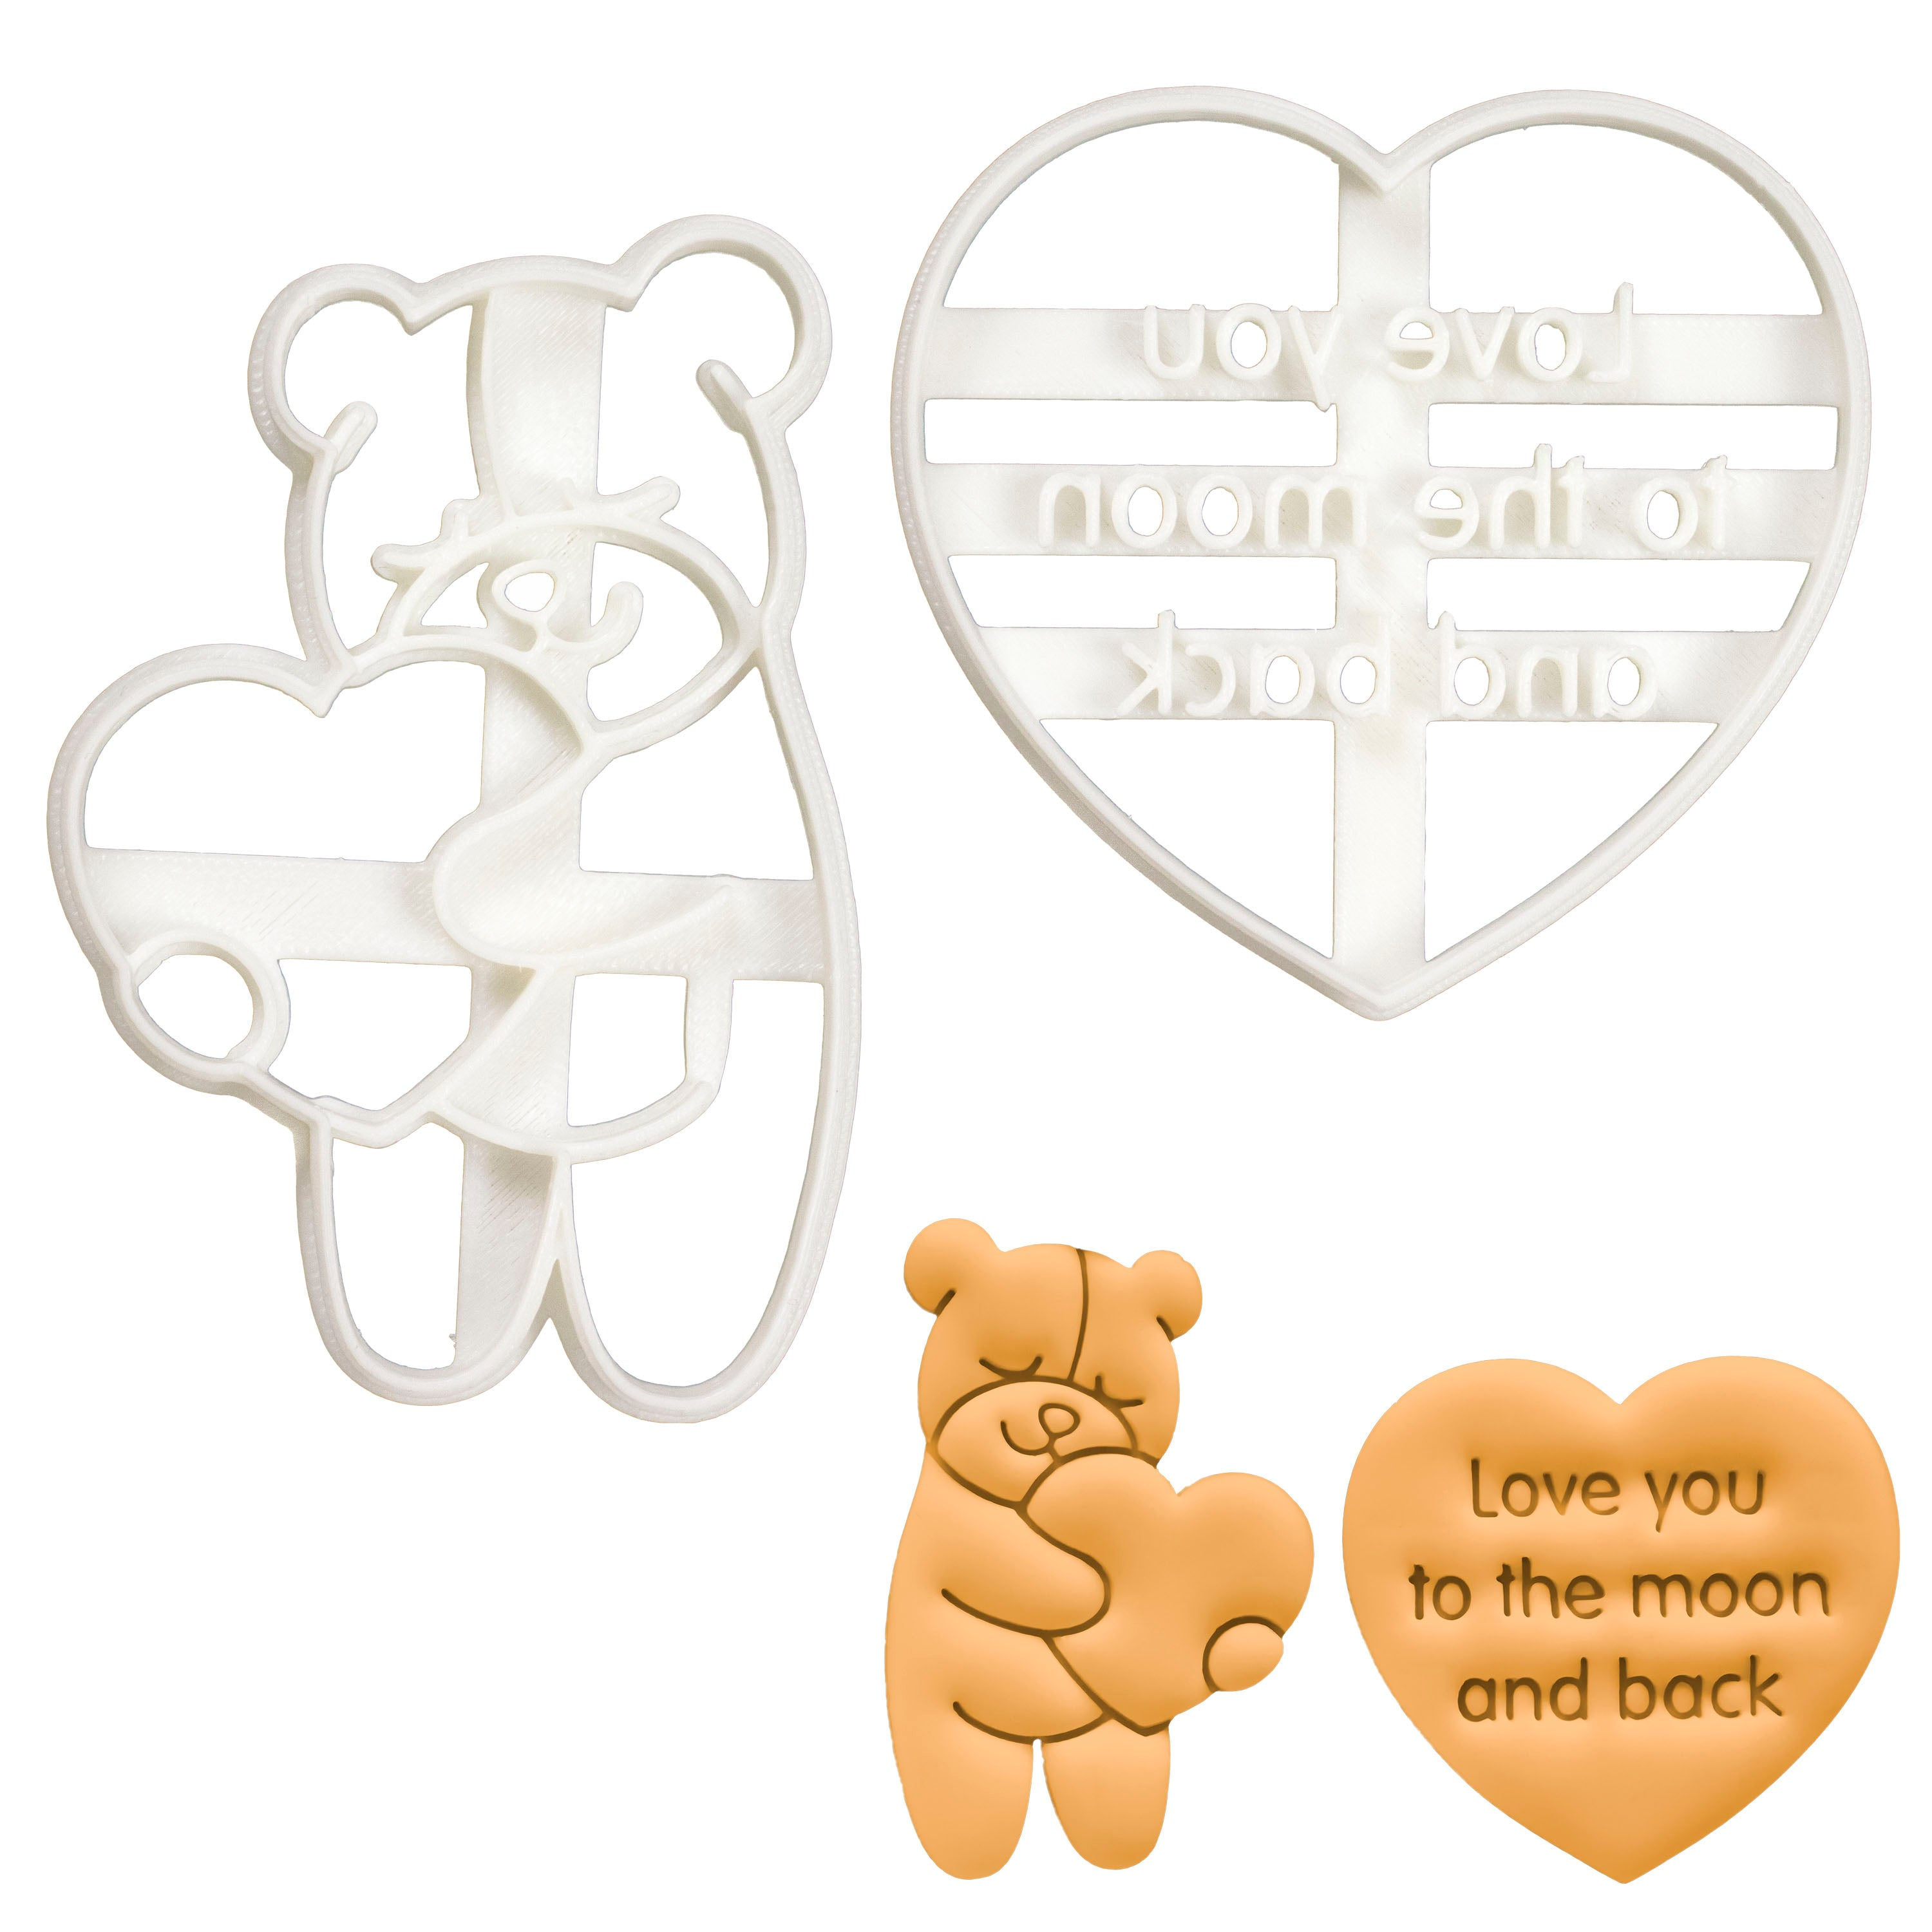 Love You to the Moon and Back in Sans Serif and Cute Bear Hugging a Heart cookie cutters